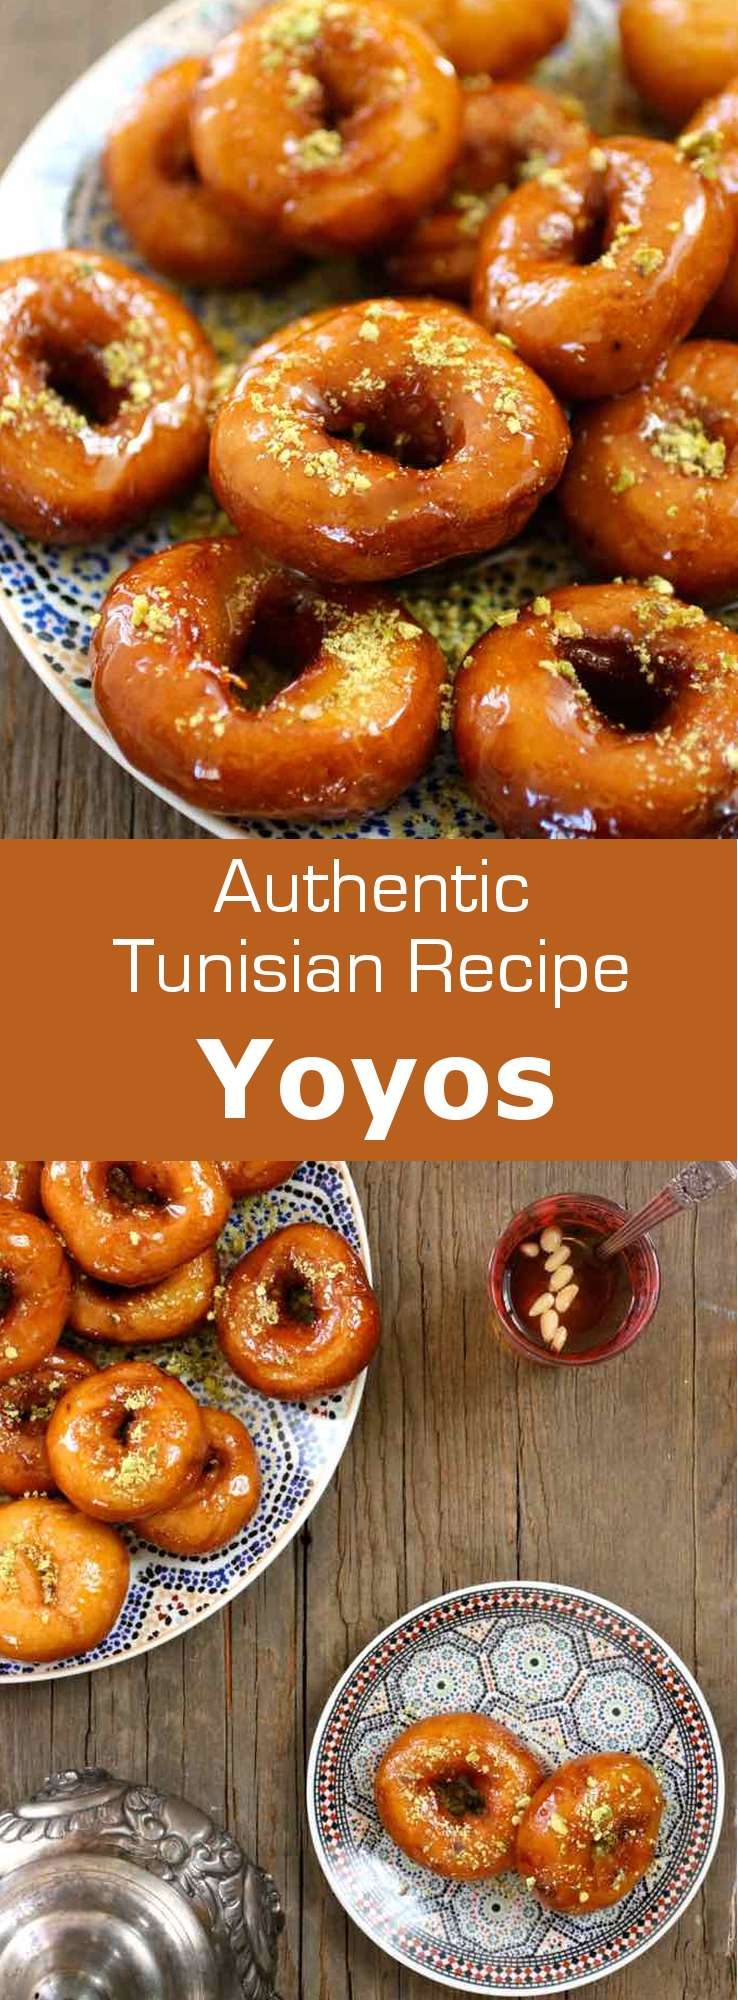 Yoyos (or youyous) are delicious donut-shaped Tunisian pastries, which are usually soaked in sugar syrup and sprinkled with crushed pistachios or almonds. #Tunisia #Tunisian #TunisianCuisine #TunisianRecipe #NorthAfricanCuisine #NorthAfricanRecipe #NorthAfrica #Maghreb #MaghrebCuisine #Pastry #TunisianPastry #NorthAfricanPastry #WorldCuisine #196flavors